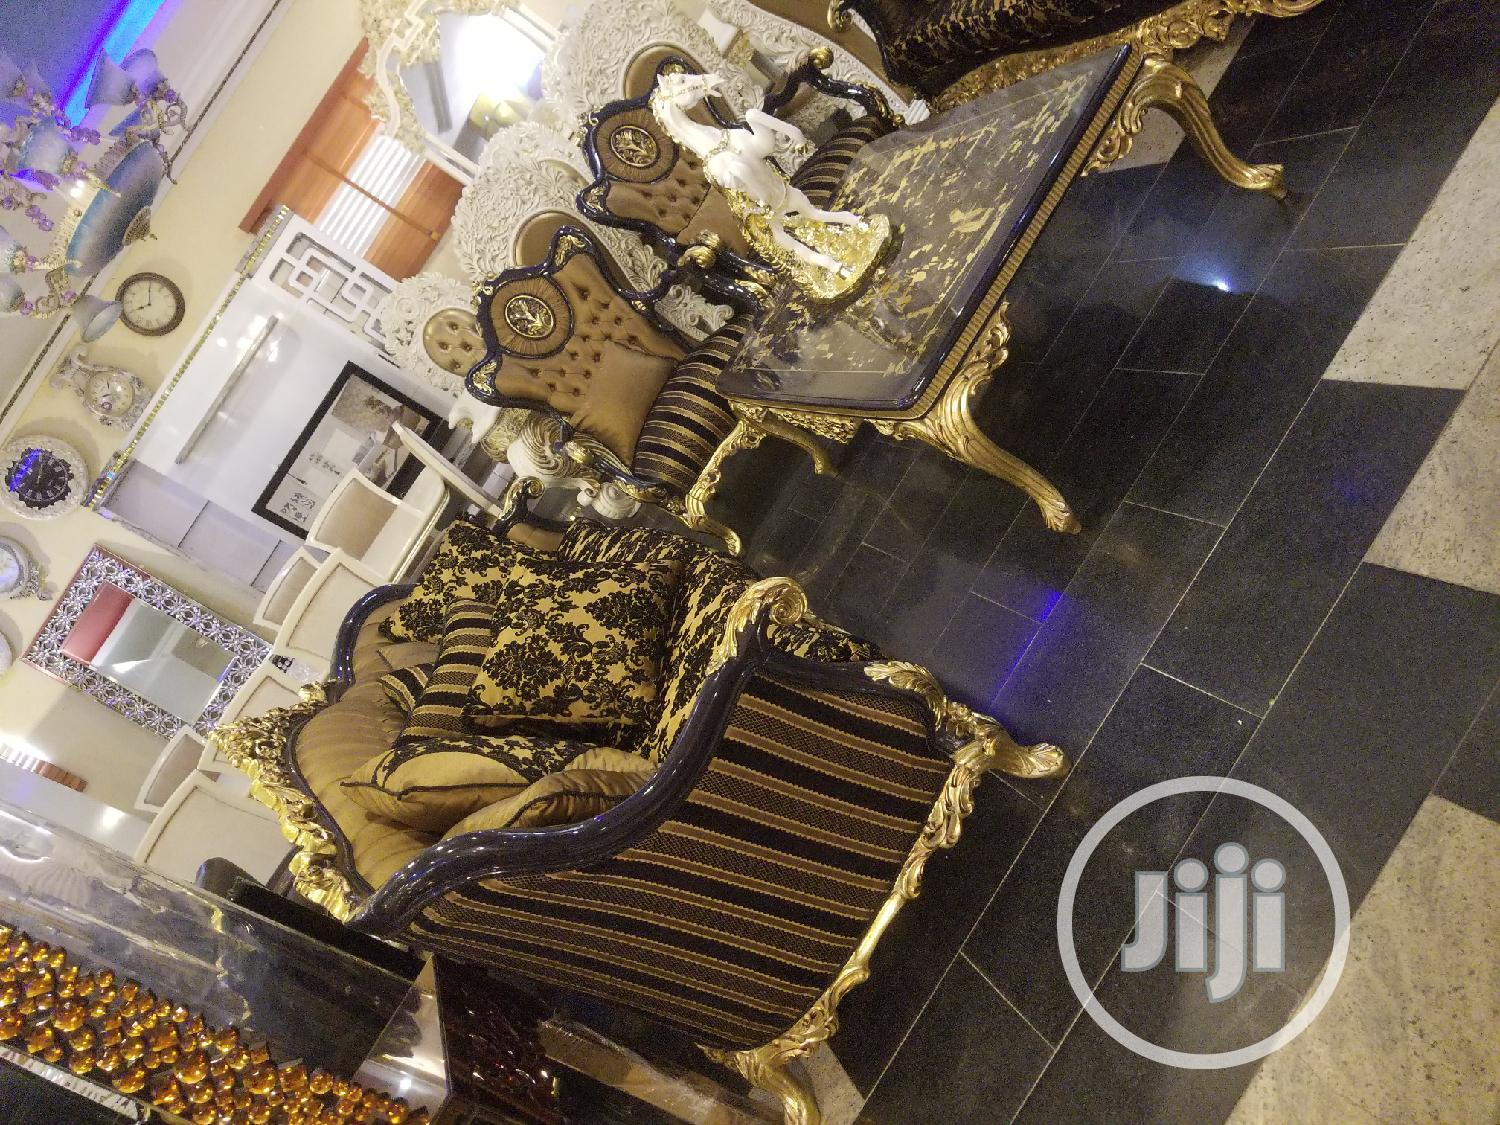 Executive Fabric Sofa Chair From Turkish | Furniture for sale in Ajah, Lagos State, Nigeria